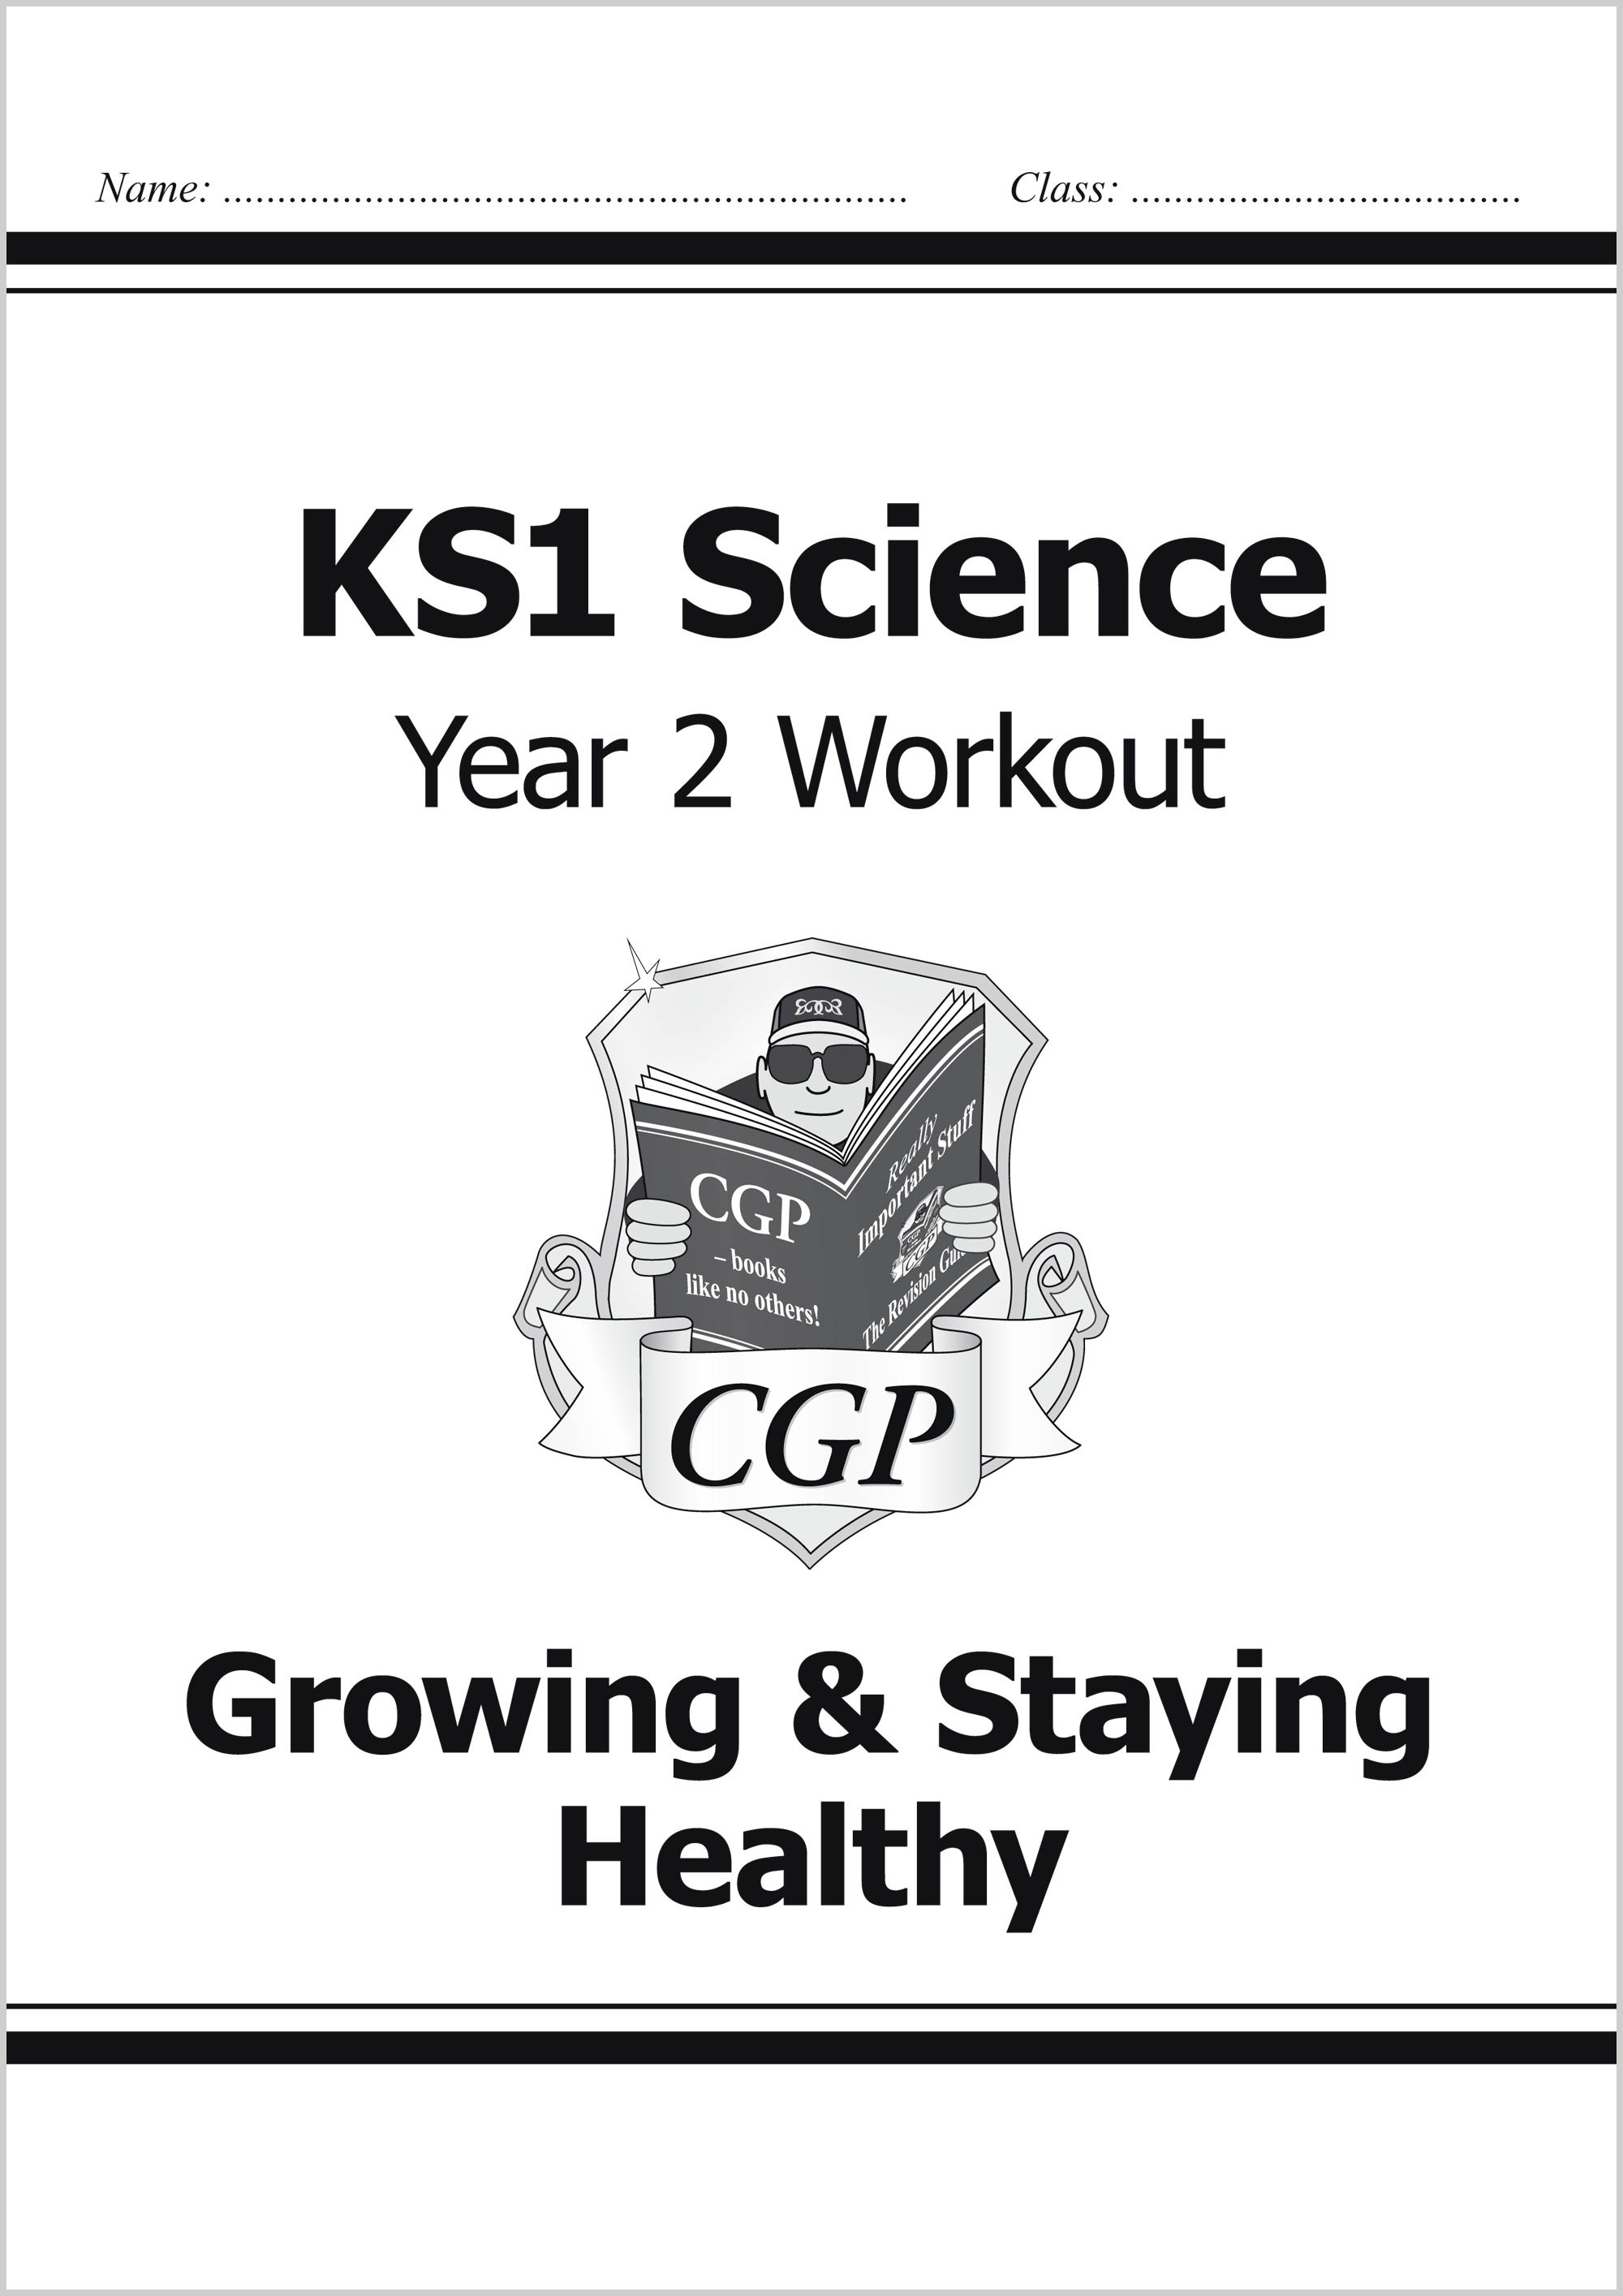 S2C11 - KS1 Science Year Two Workout: Growing & Staying Healthy